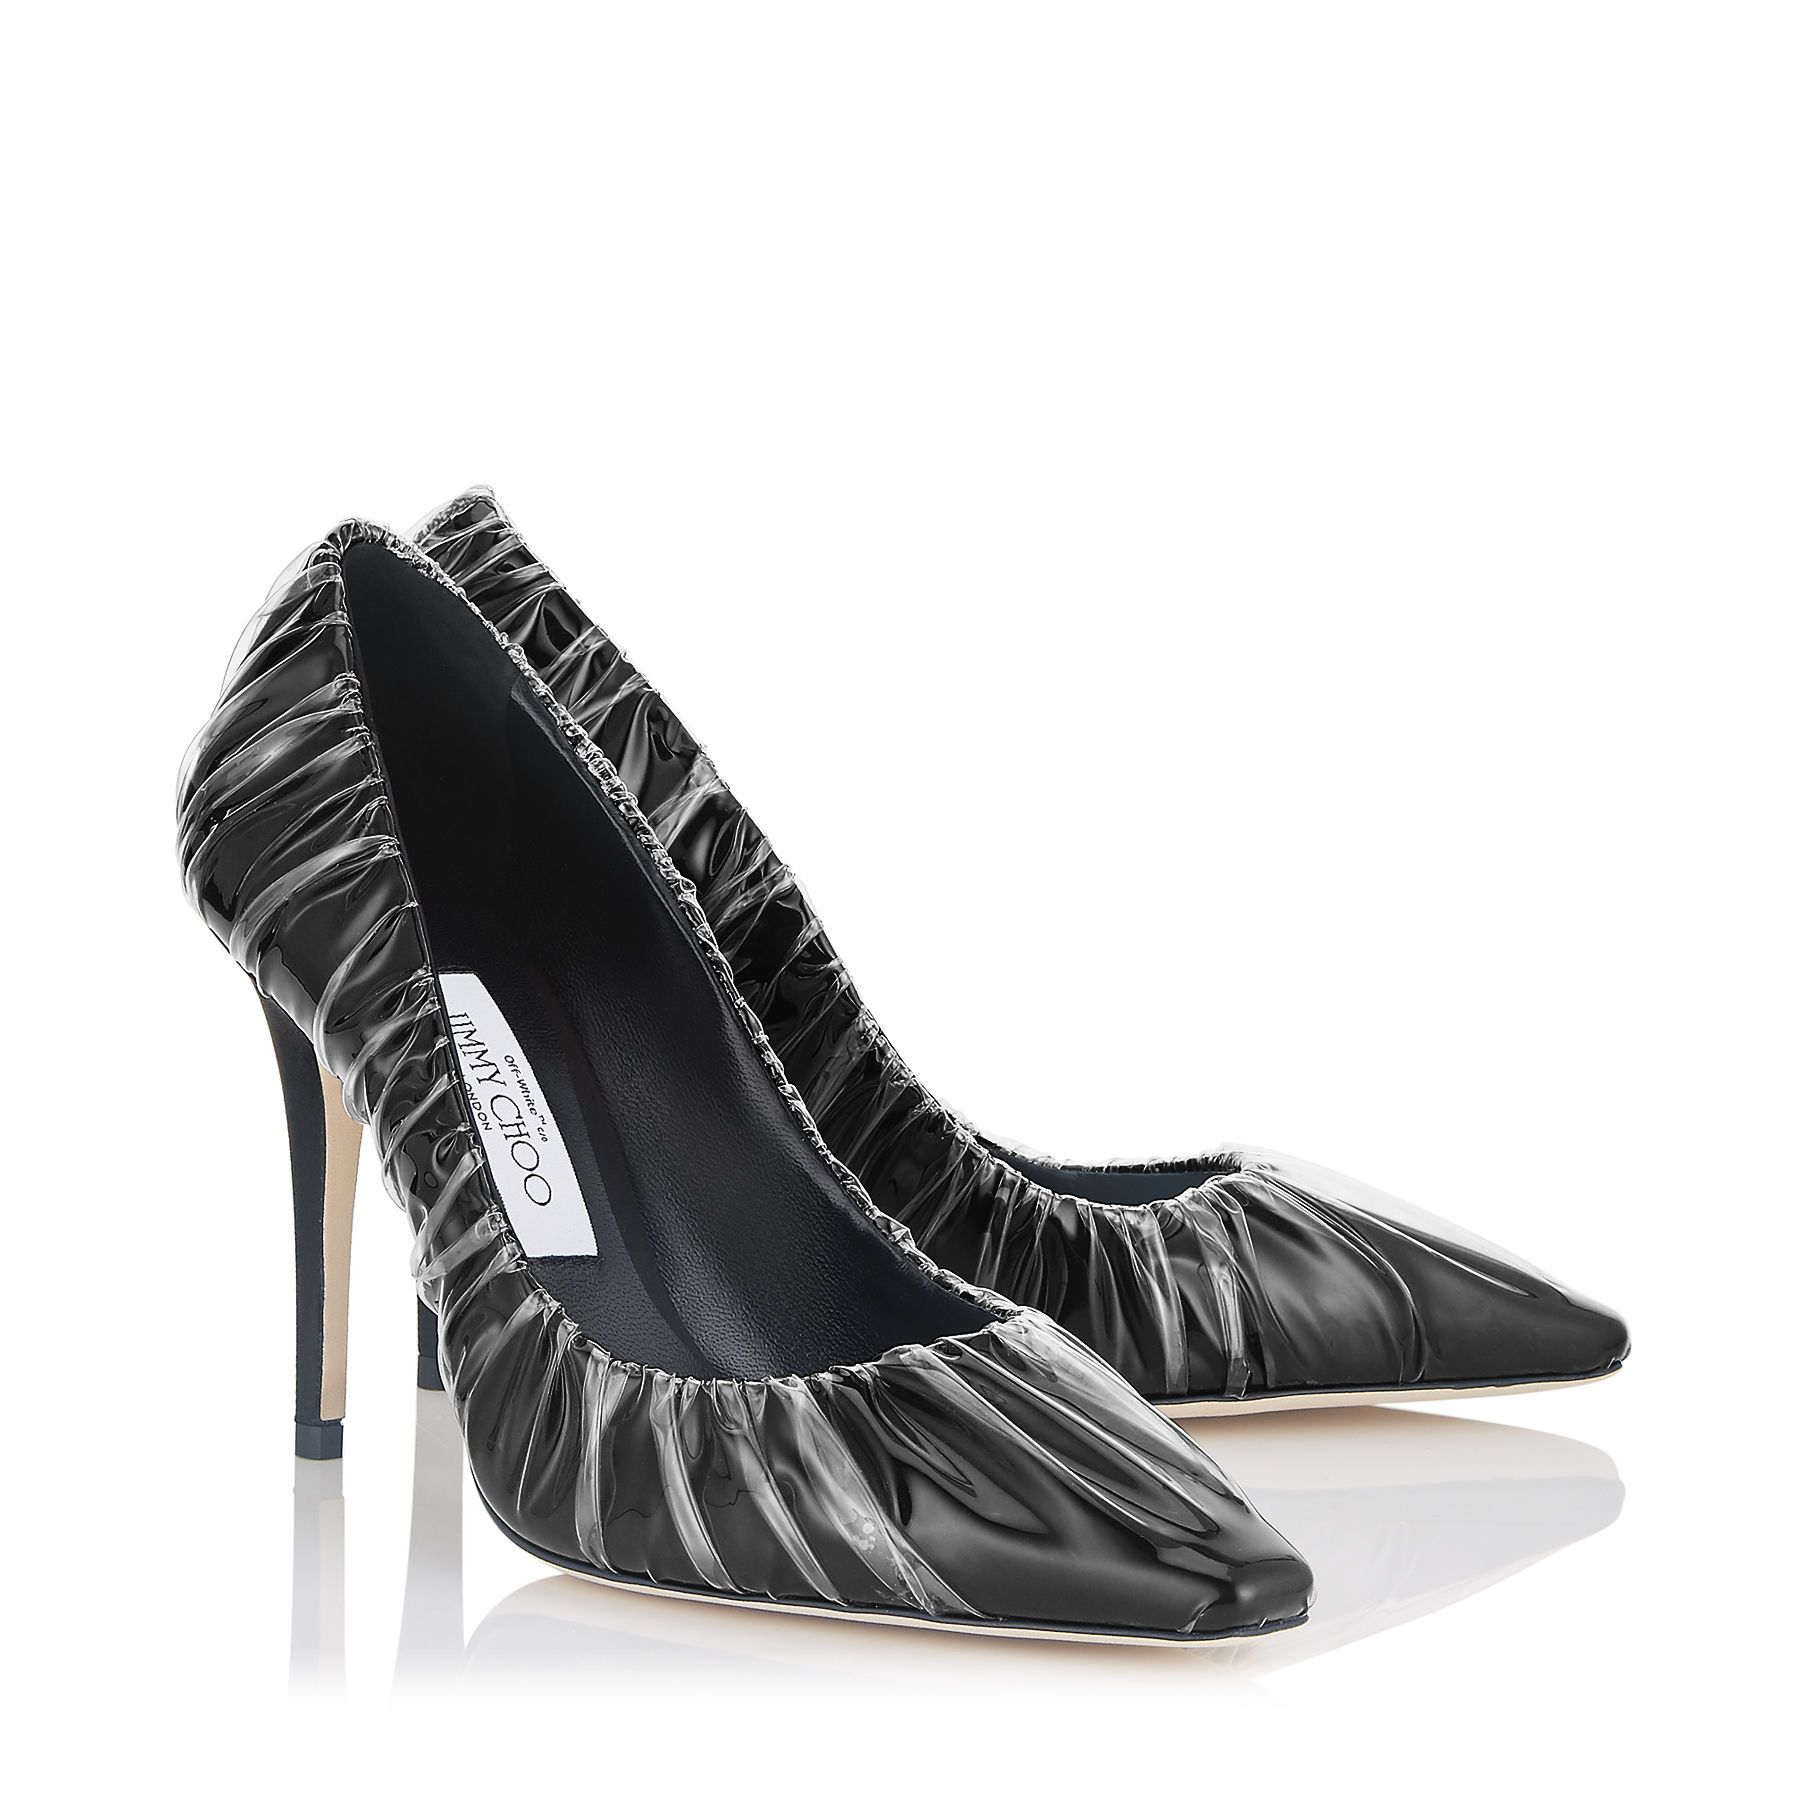 4c7931108f4a Jimmy Choo - + Off-White Anne 100 Black satin chisel toe pumps with ruched  TPU